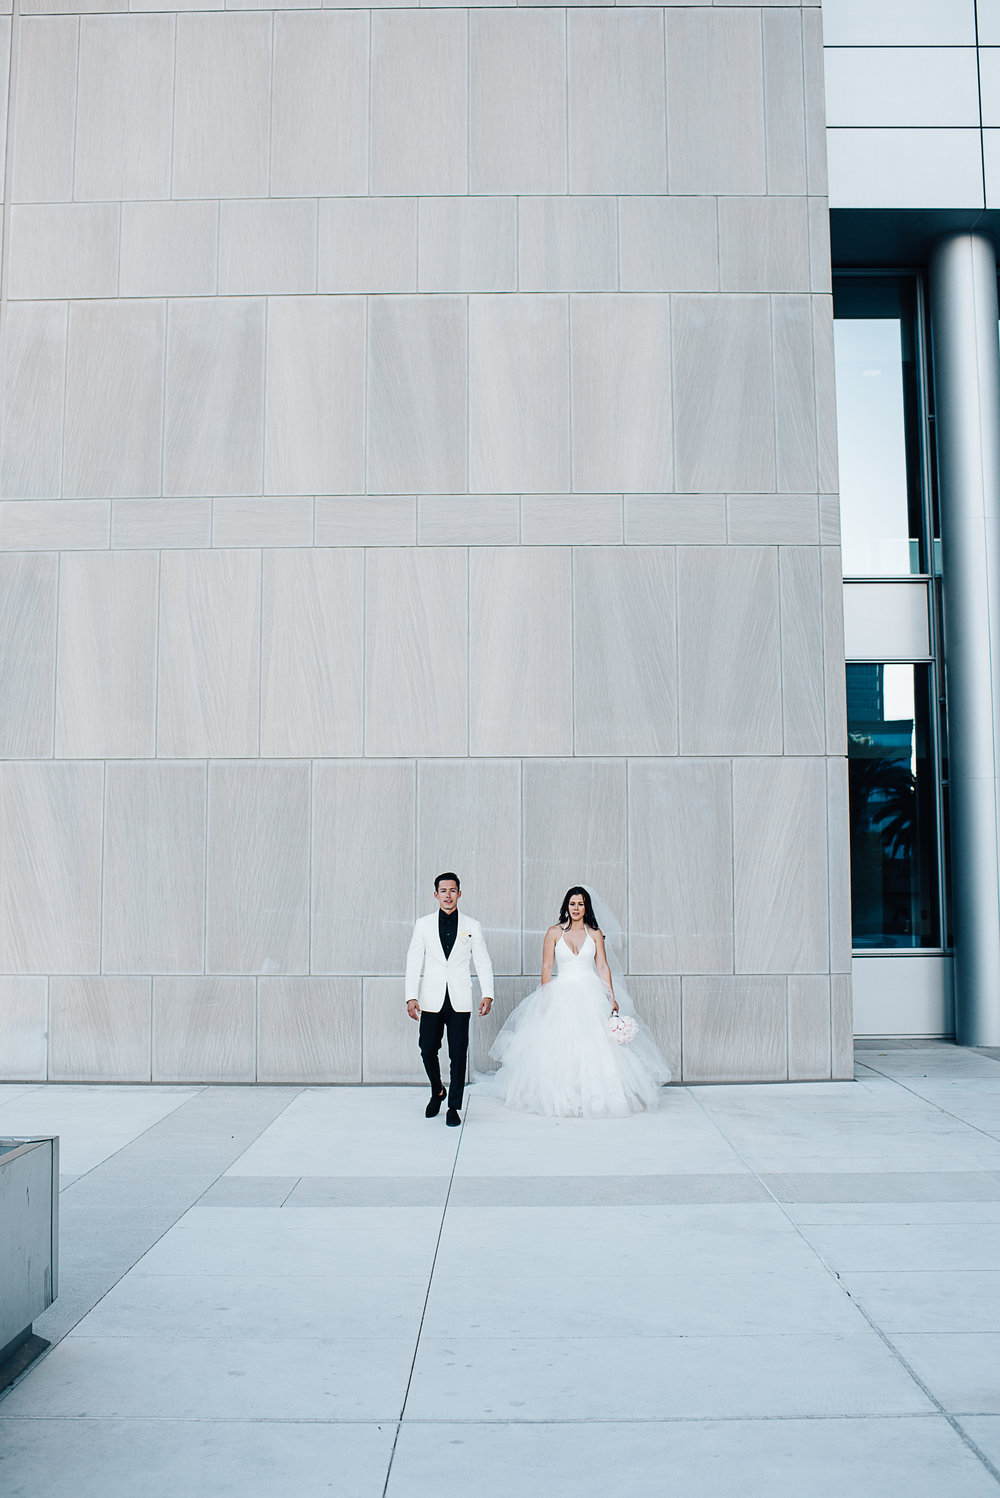 las vegas cosmopolitan wedding, las Vegas wedding, las vegas elopement, vegas wedding, vera wang wedding dress, handsome groom, beautiful bride, las vegas wedding photography, wedding inspiration, 1,000 roses, roses, simple wedding, classic wedding, vintage wedding, wedding photographer, ashley marie myers